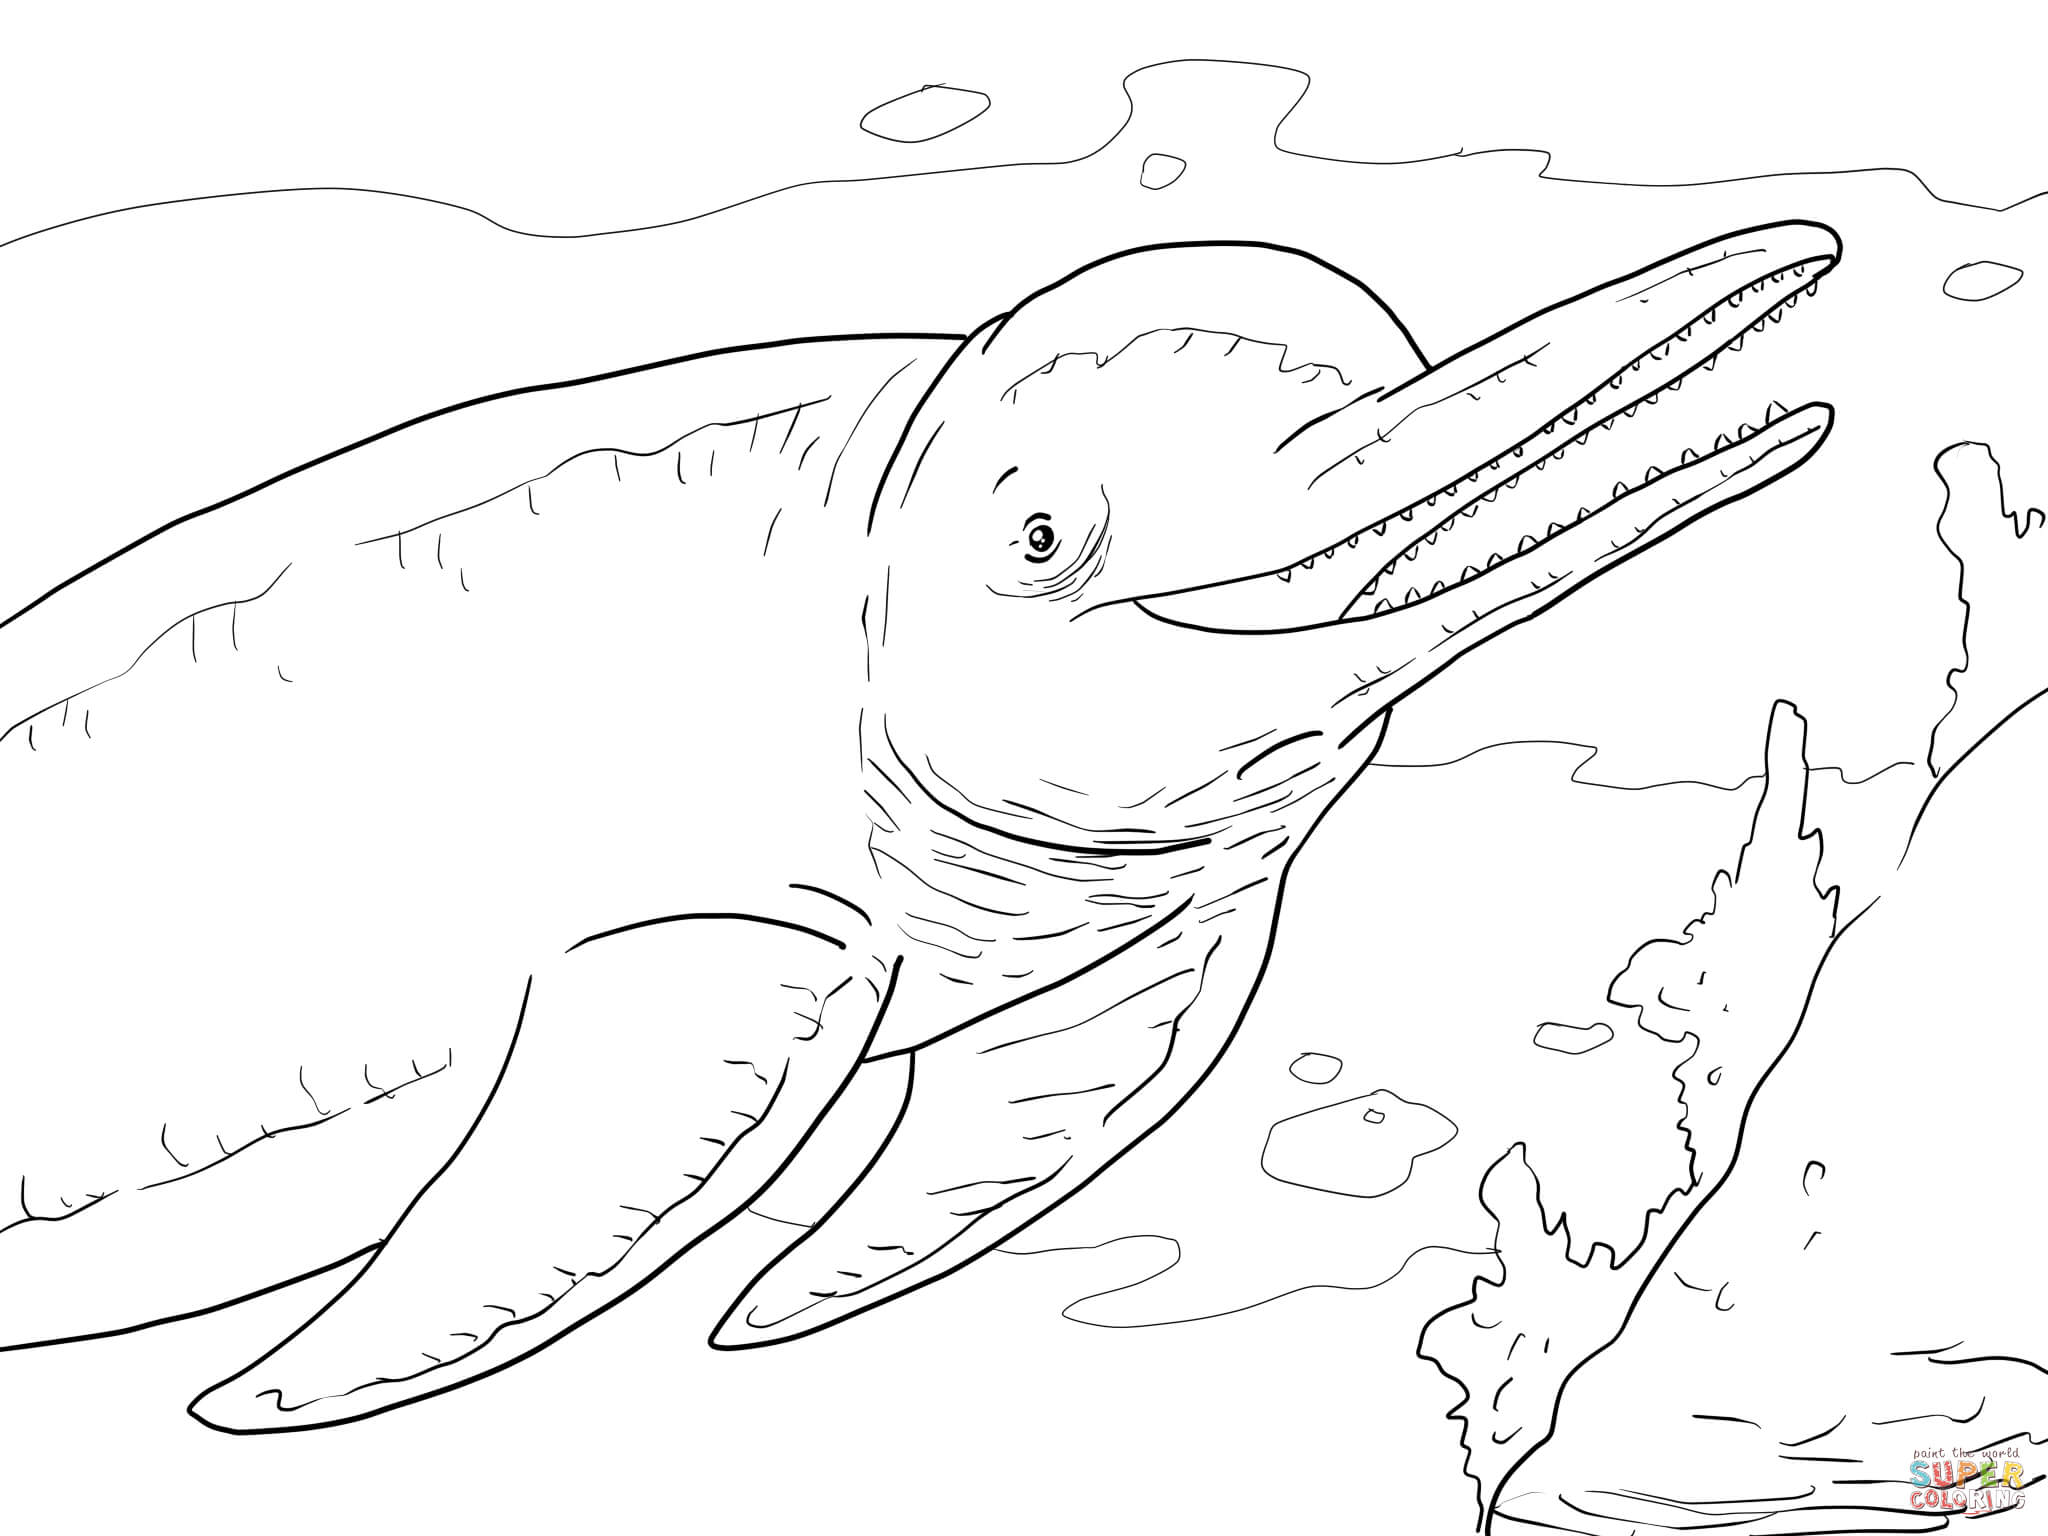 Amazon River Dolphin Boto Coloring Page